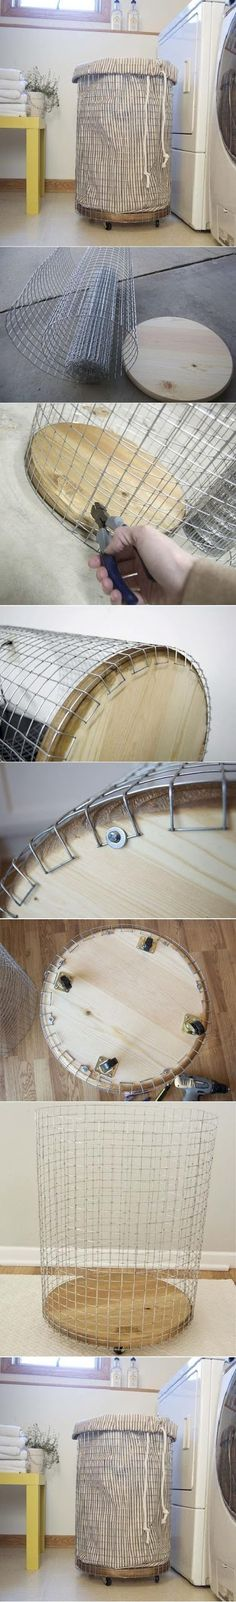 Cheap & Chic: How To Make a French-Vintage-Inspired Wire Hamper - DIY wire laundry basket La mejor imagen sobre diy face mask para tu gusto Estás buscando algo y no - Diy Projects To Try, Crafts To Make, Diy Crafts, Crafts Cheap, Towel Crafts, Weekend Projects, Diy Décoration, Easy Diy, Wire Laundry Basket